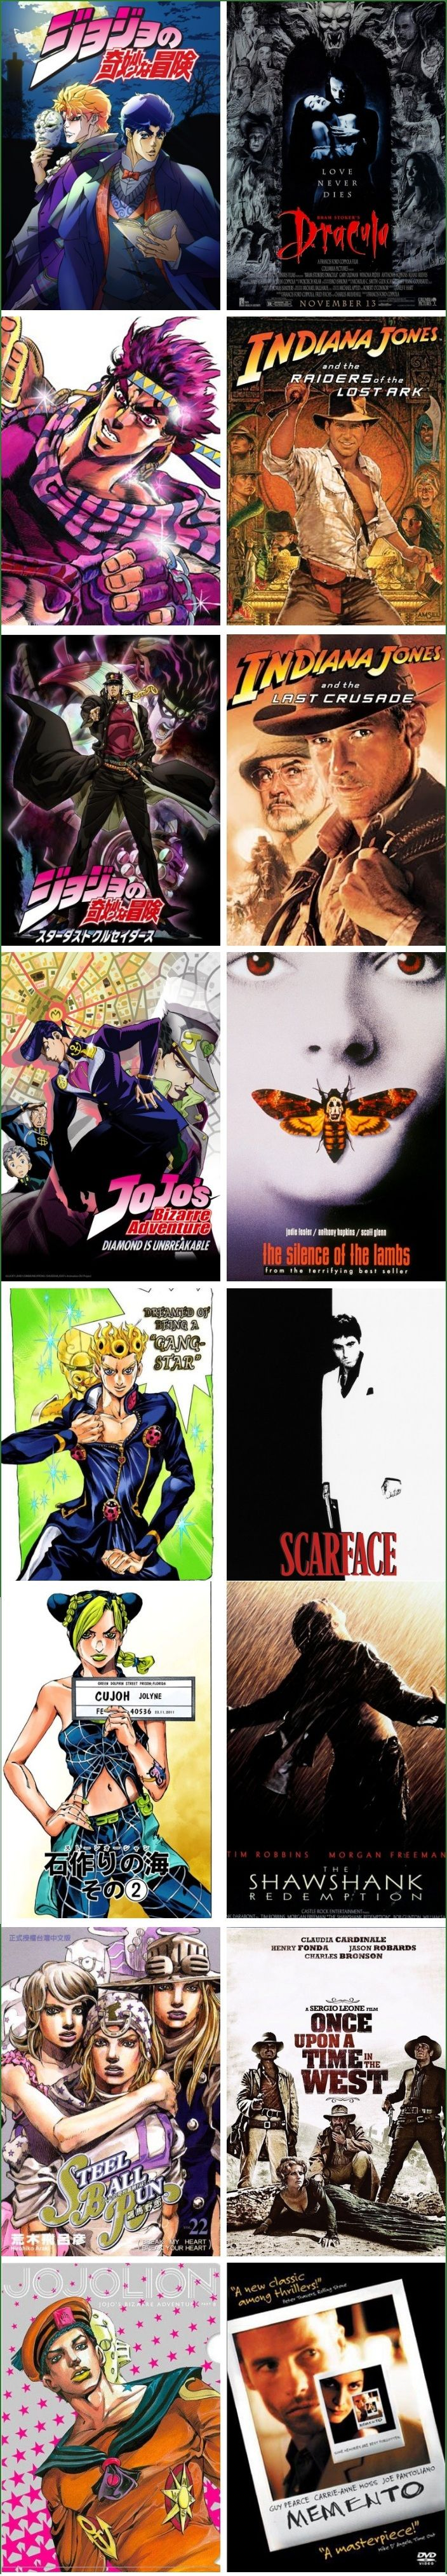 Jojo's Bizarre Adventure for Dummies